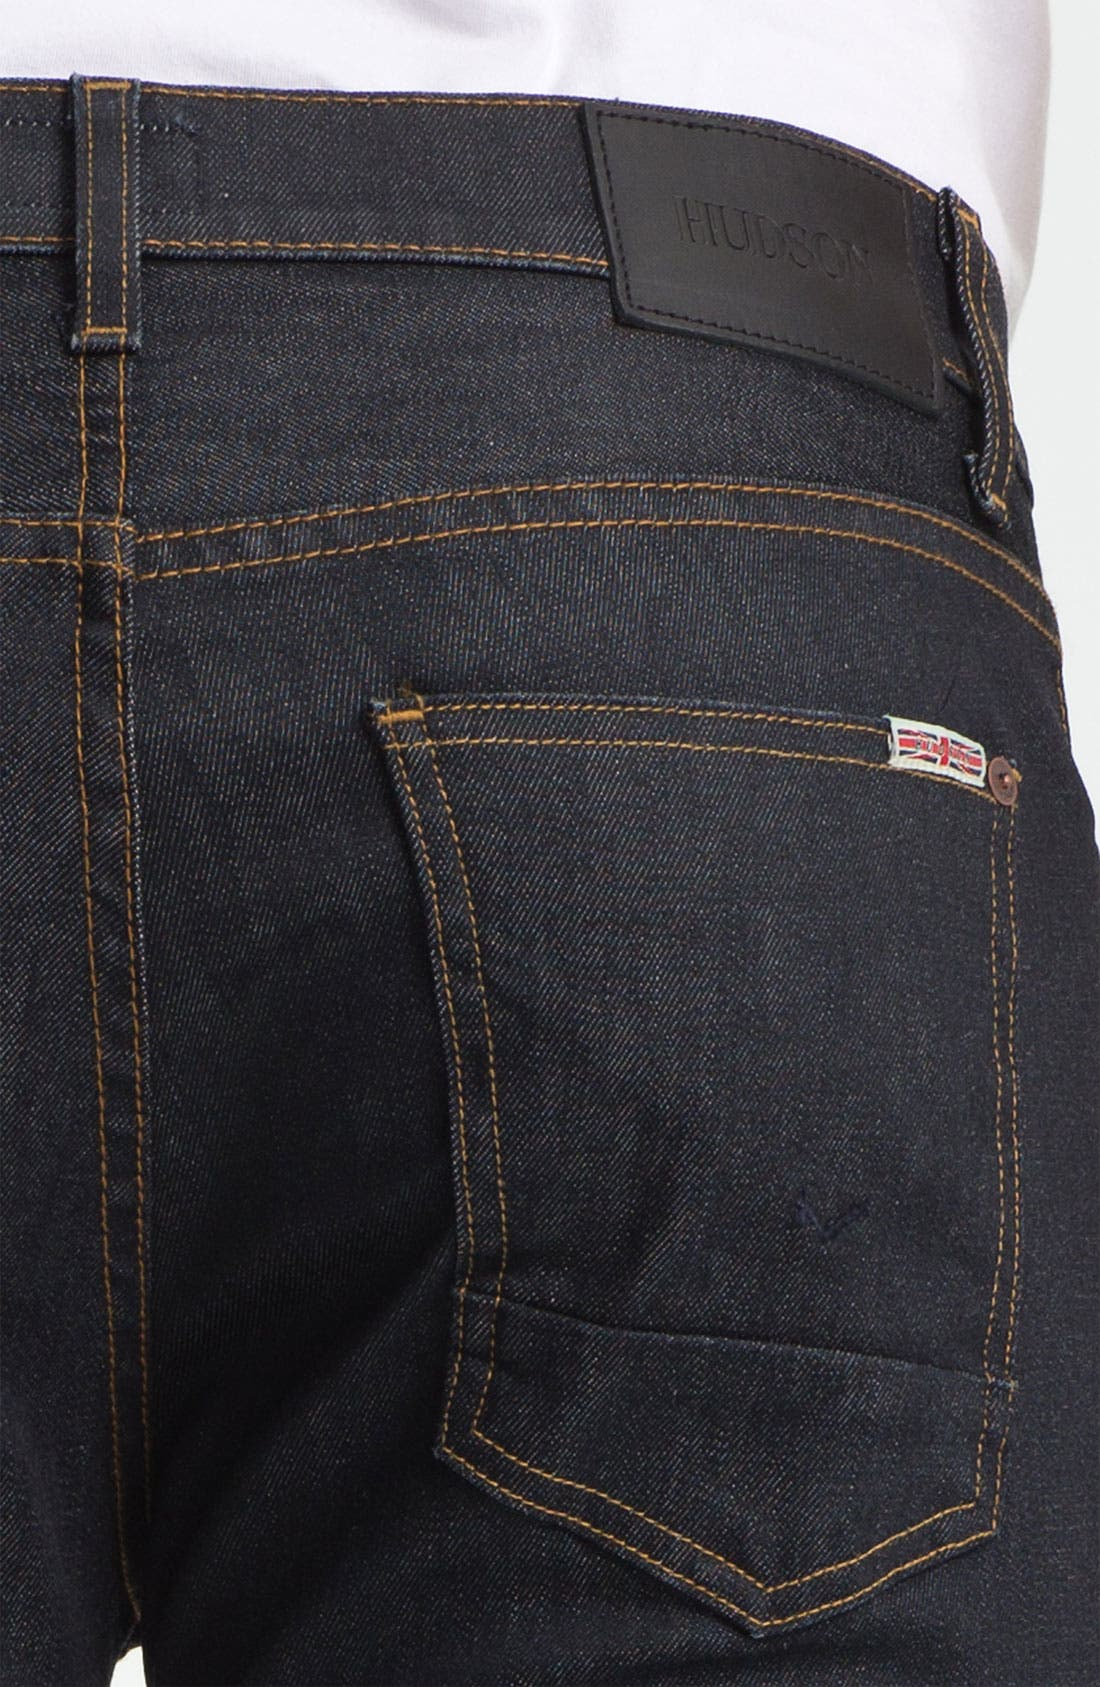 Alternate Image 4  - Hudson Jeans 'Sartor' Skinny Fit Jeans (Edges)